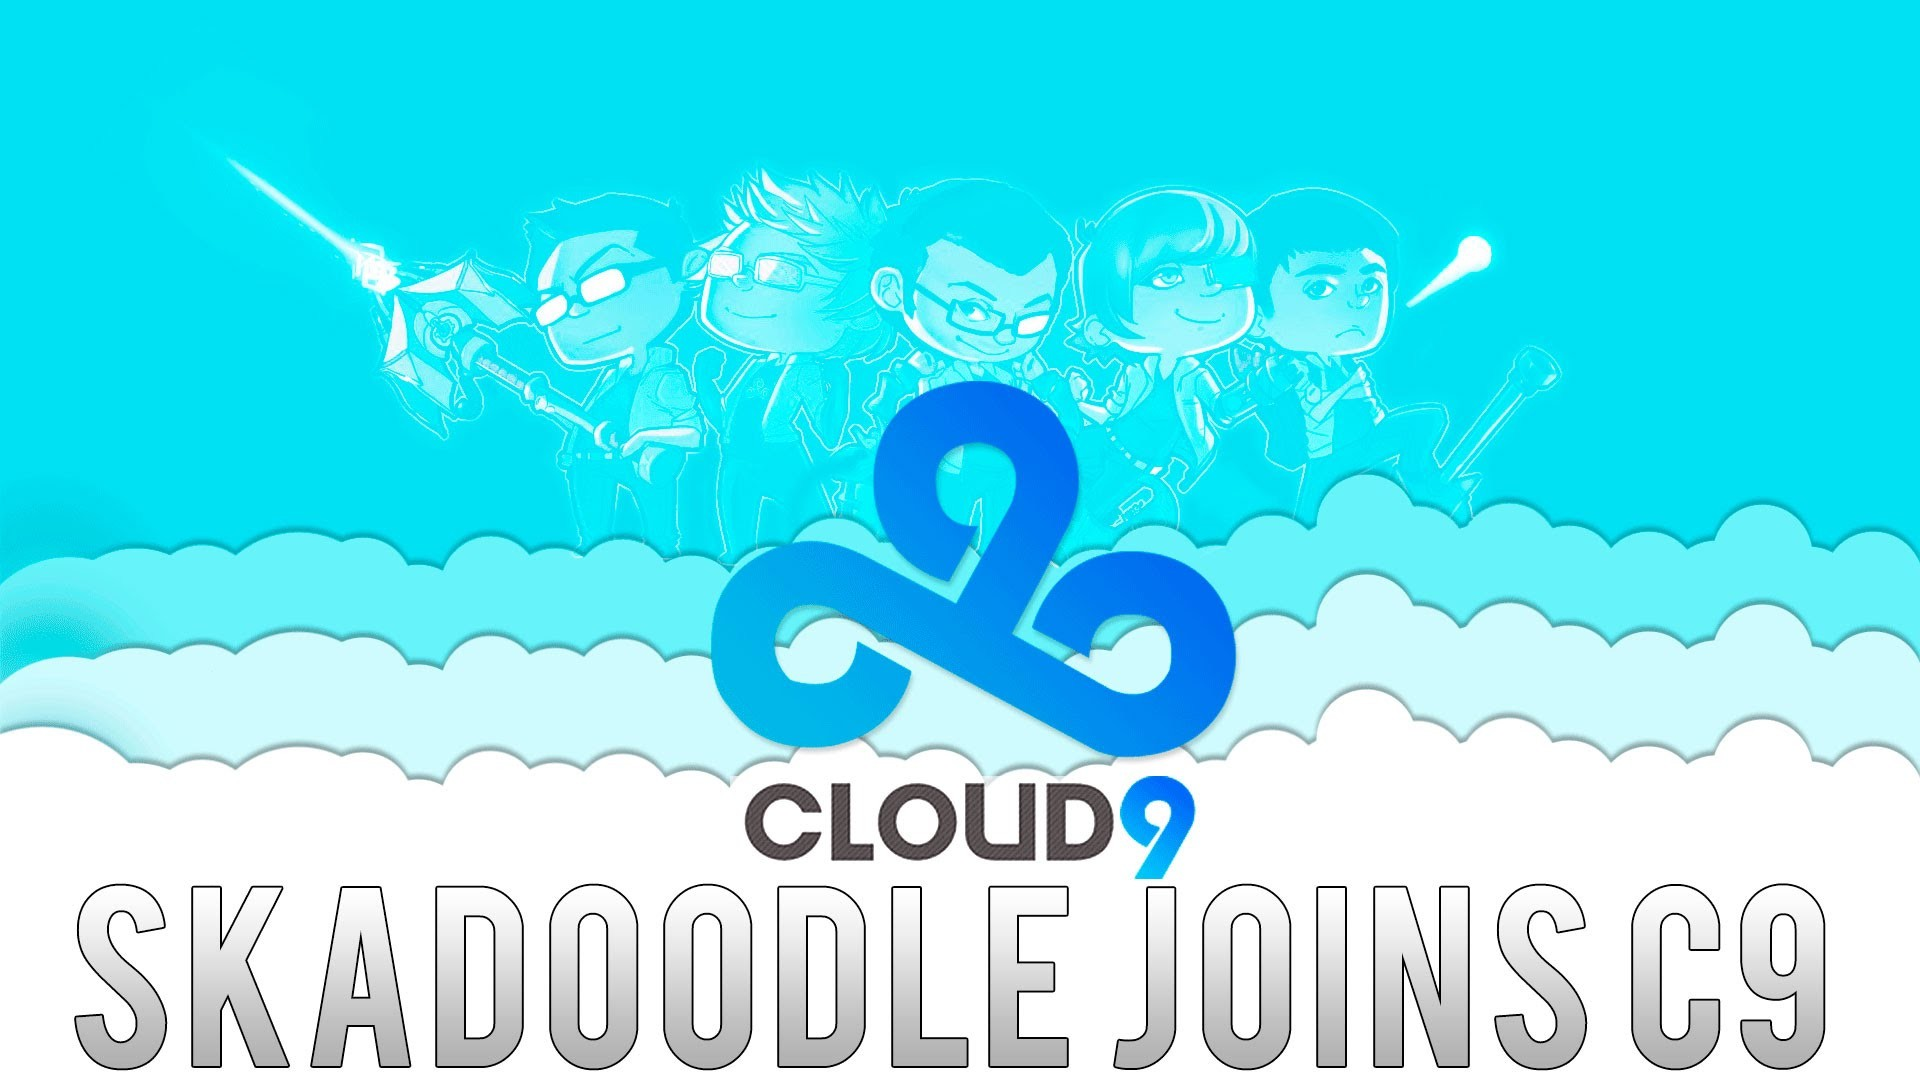 CS:GO – Skadoodle Joins Cloud9 – Welcome to Cloud9 – Skadoodle Highlights –  Frag Movie